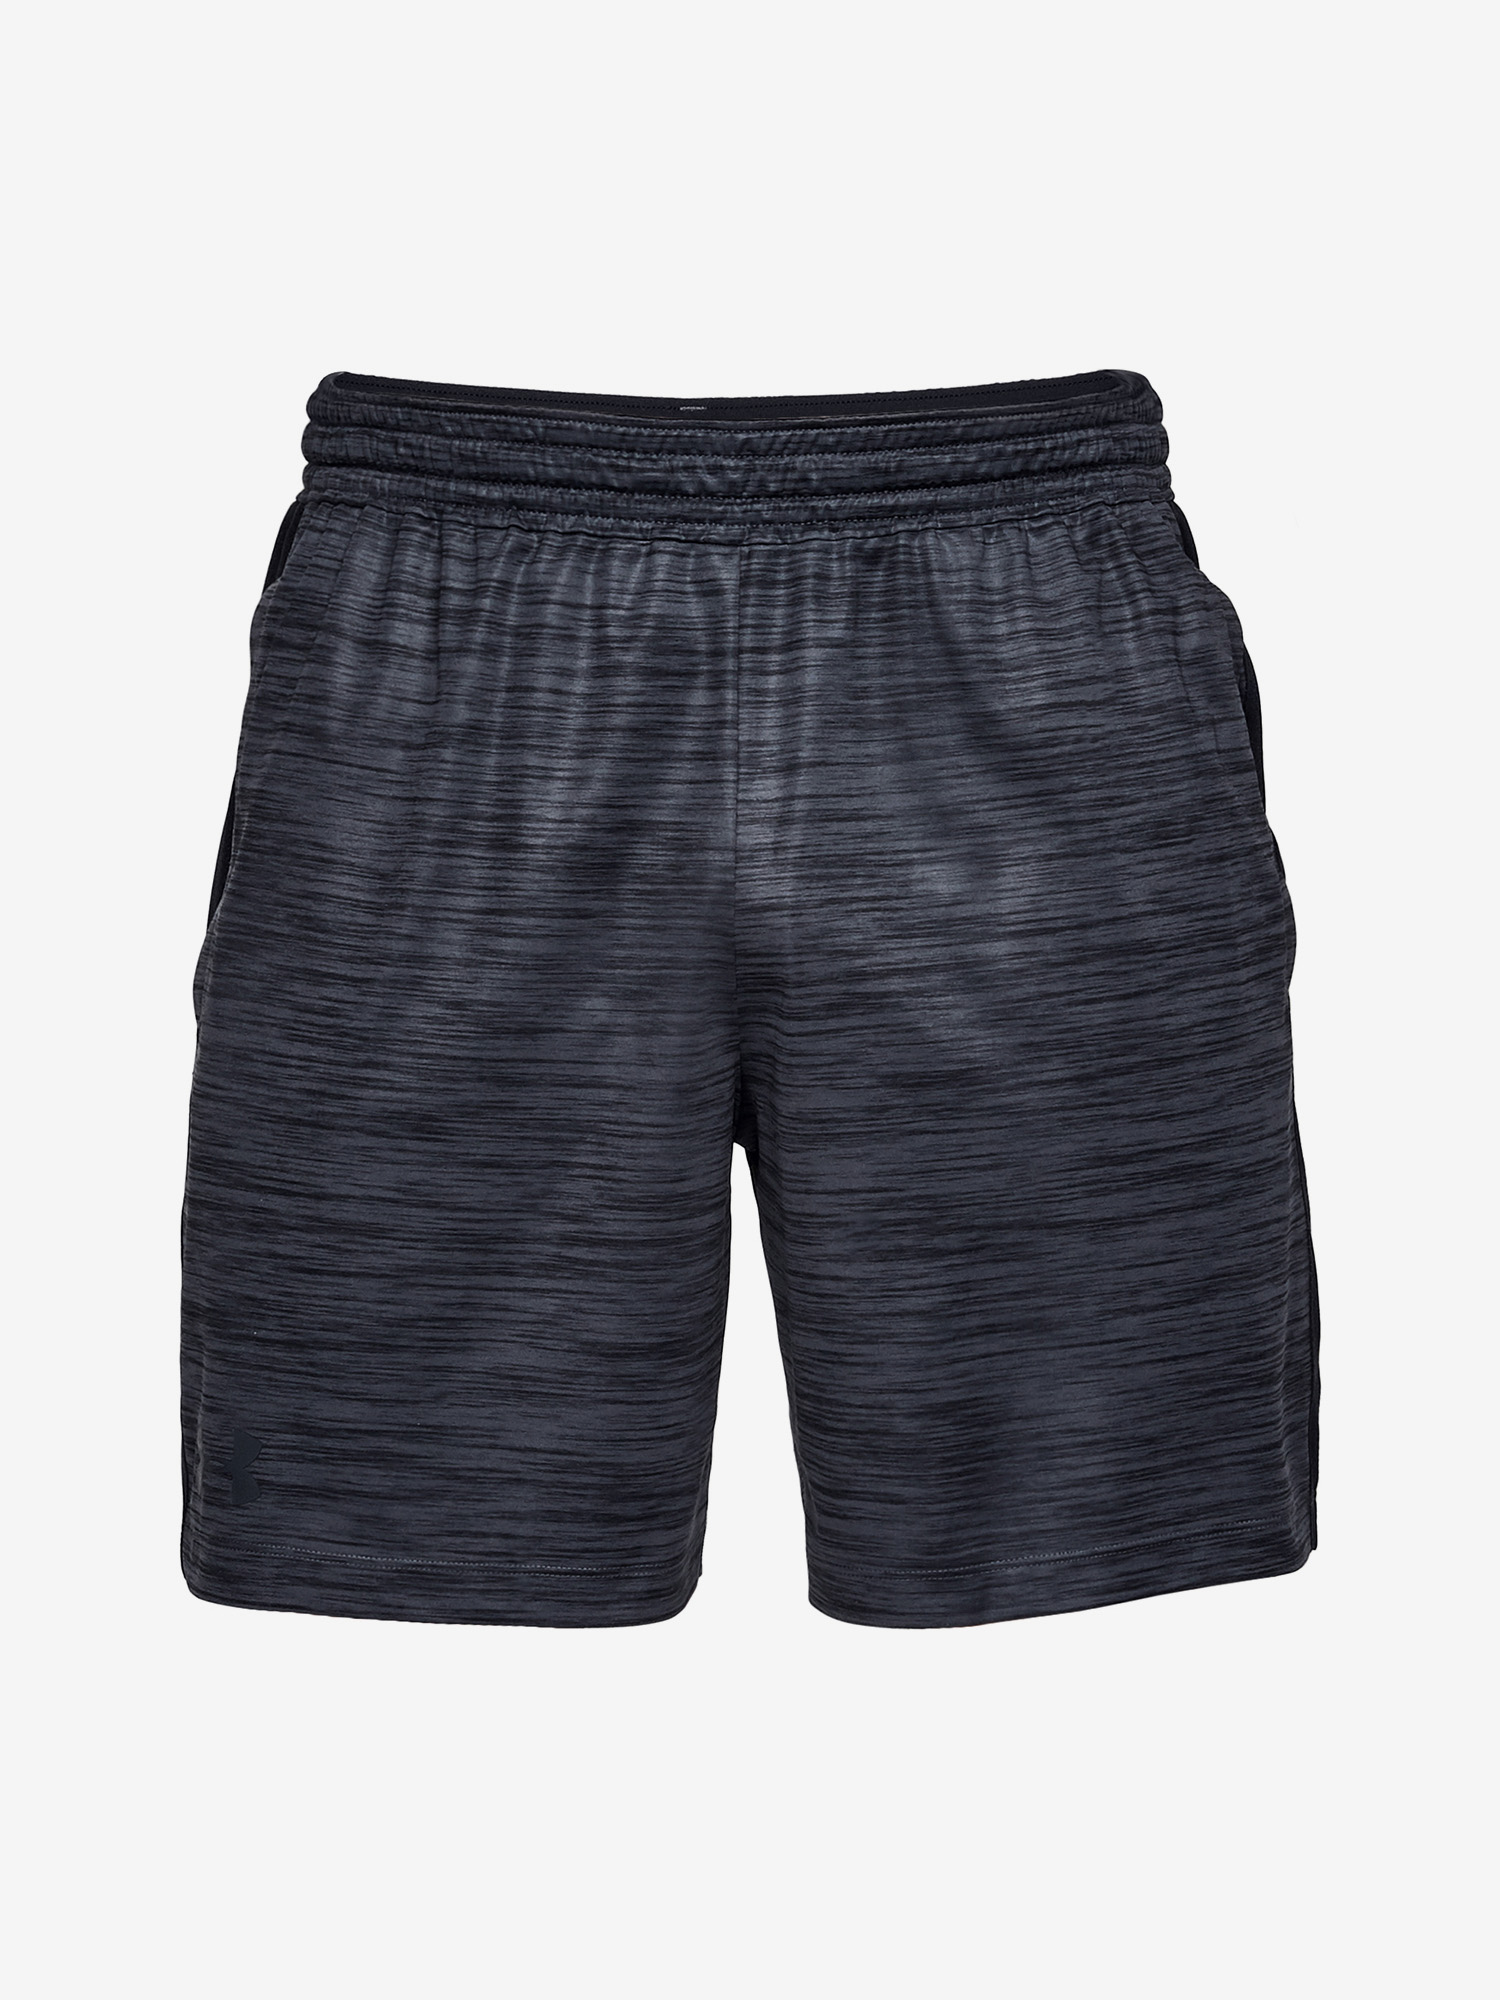 Kraťasy Under Armour UA MK-1 7in Twist Shorts-BLK (3)